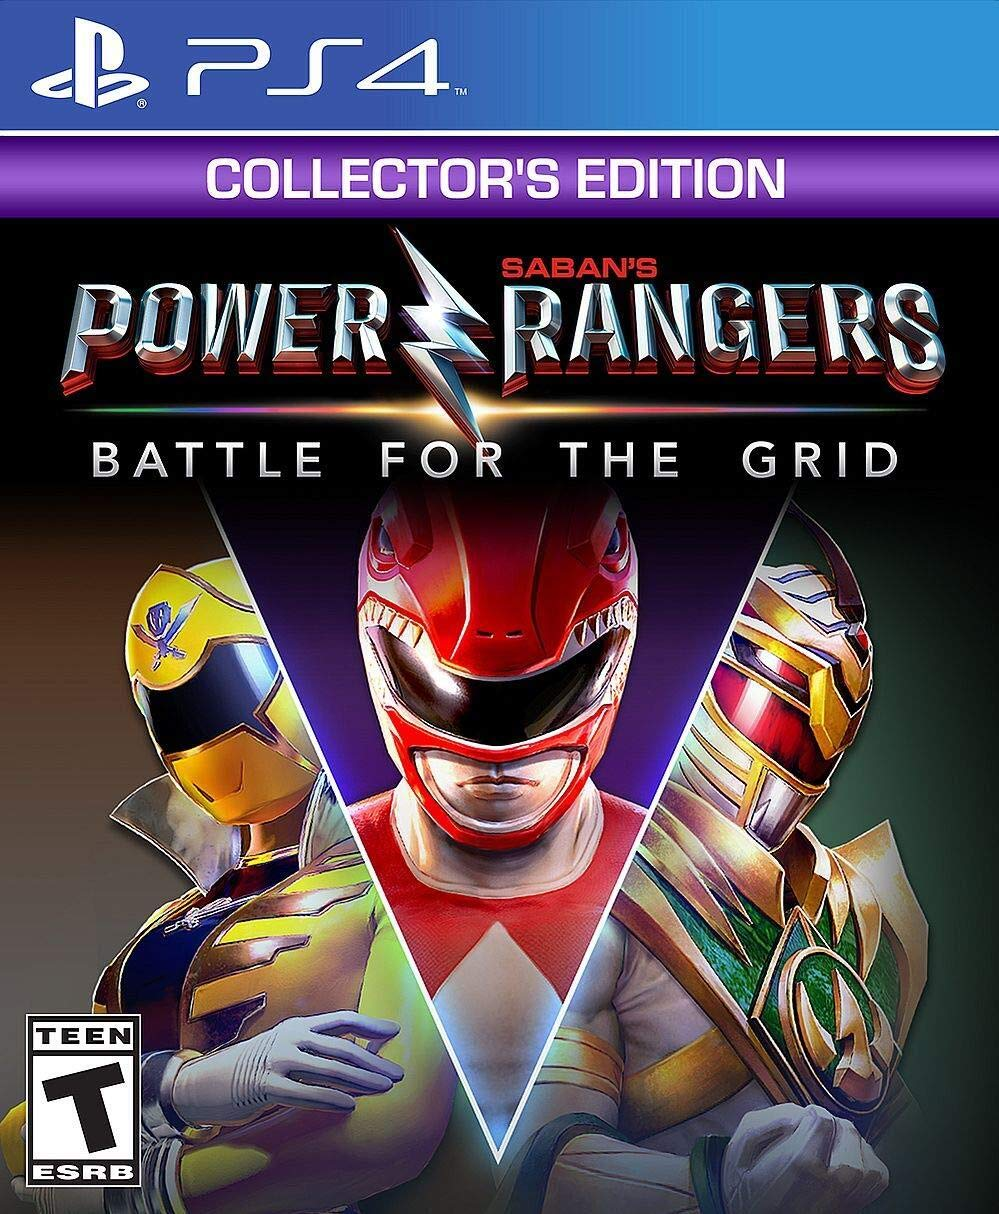 Power Rangers: Battle for the Grid Collector's Edition (PS4) - PlayStation 4 - Rite Gadgets